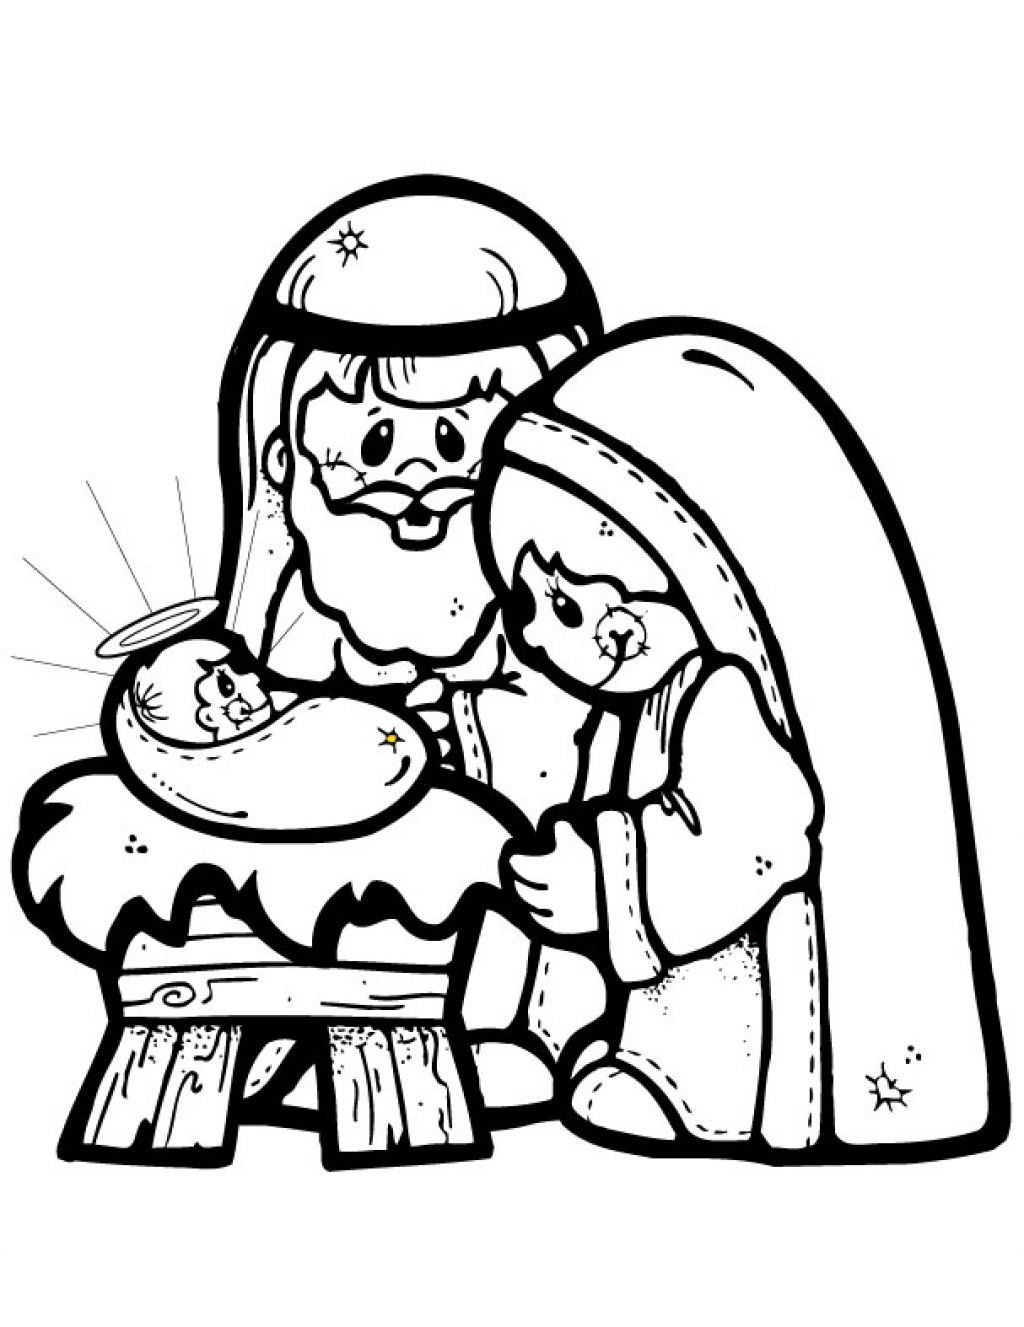 1024x1327 Nativity Black And White Nativity Clip Art Black And White